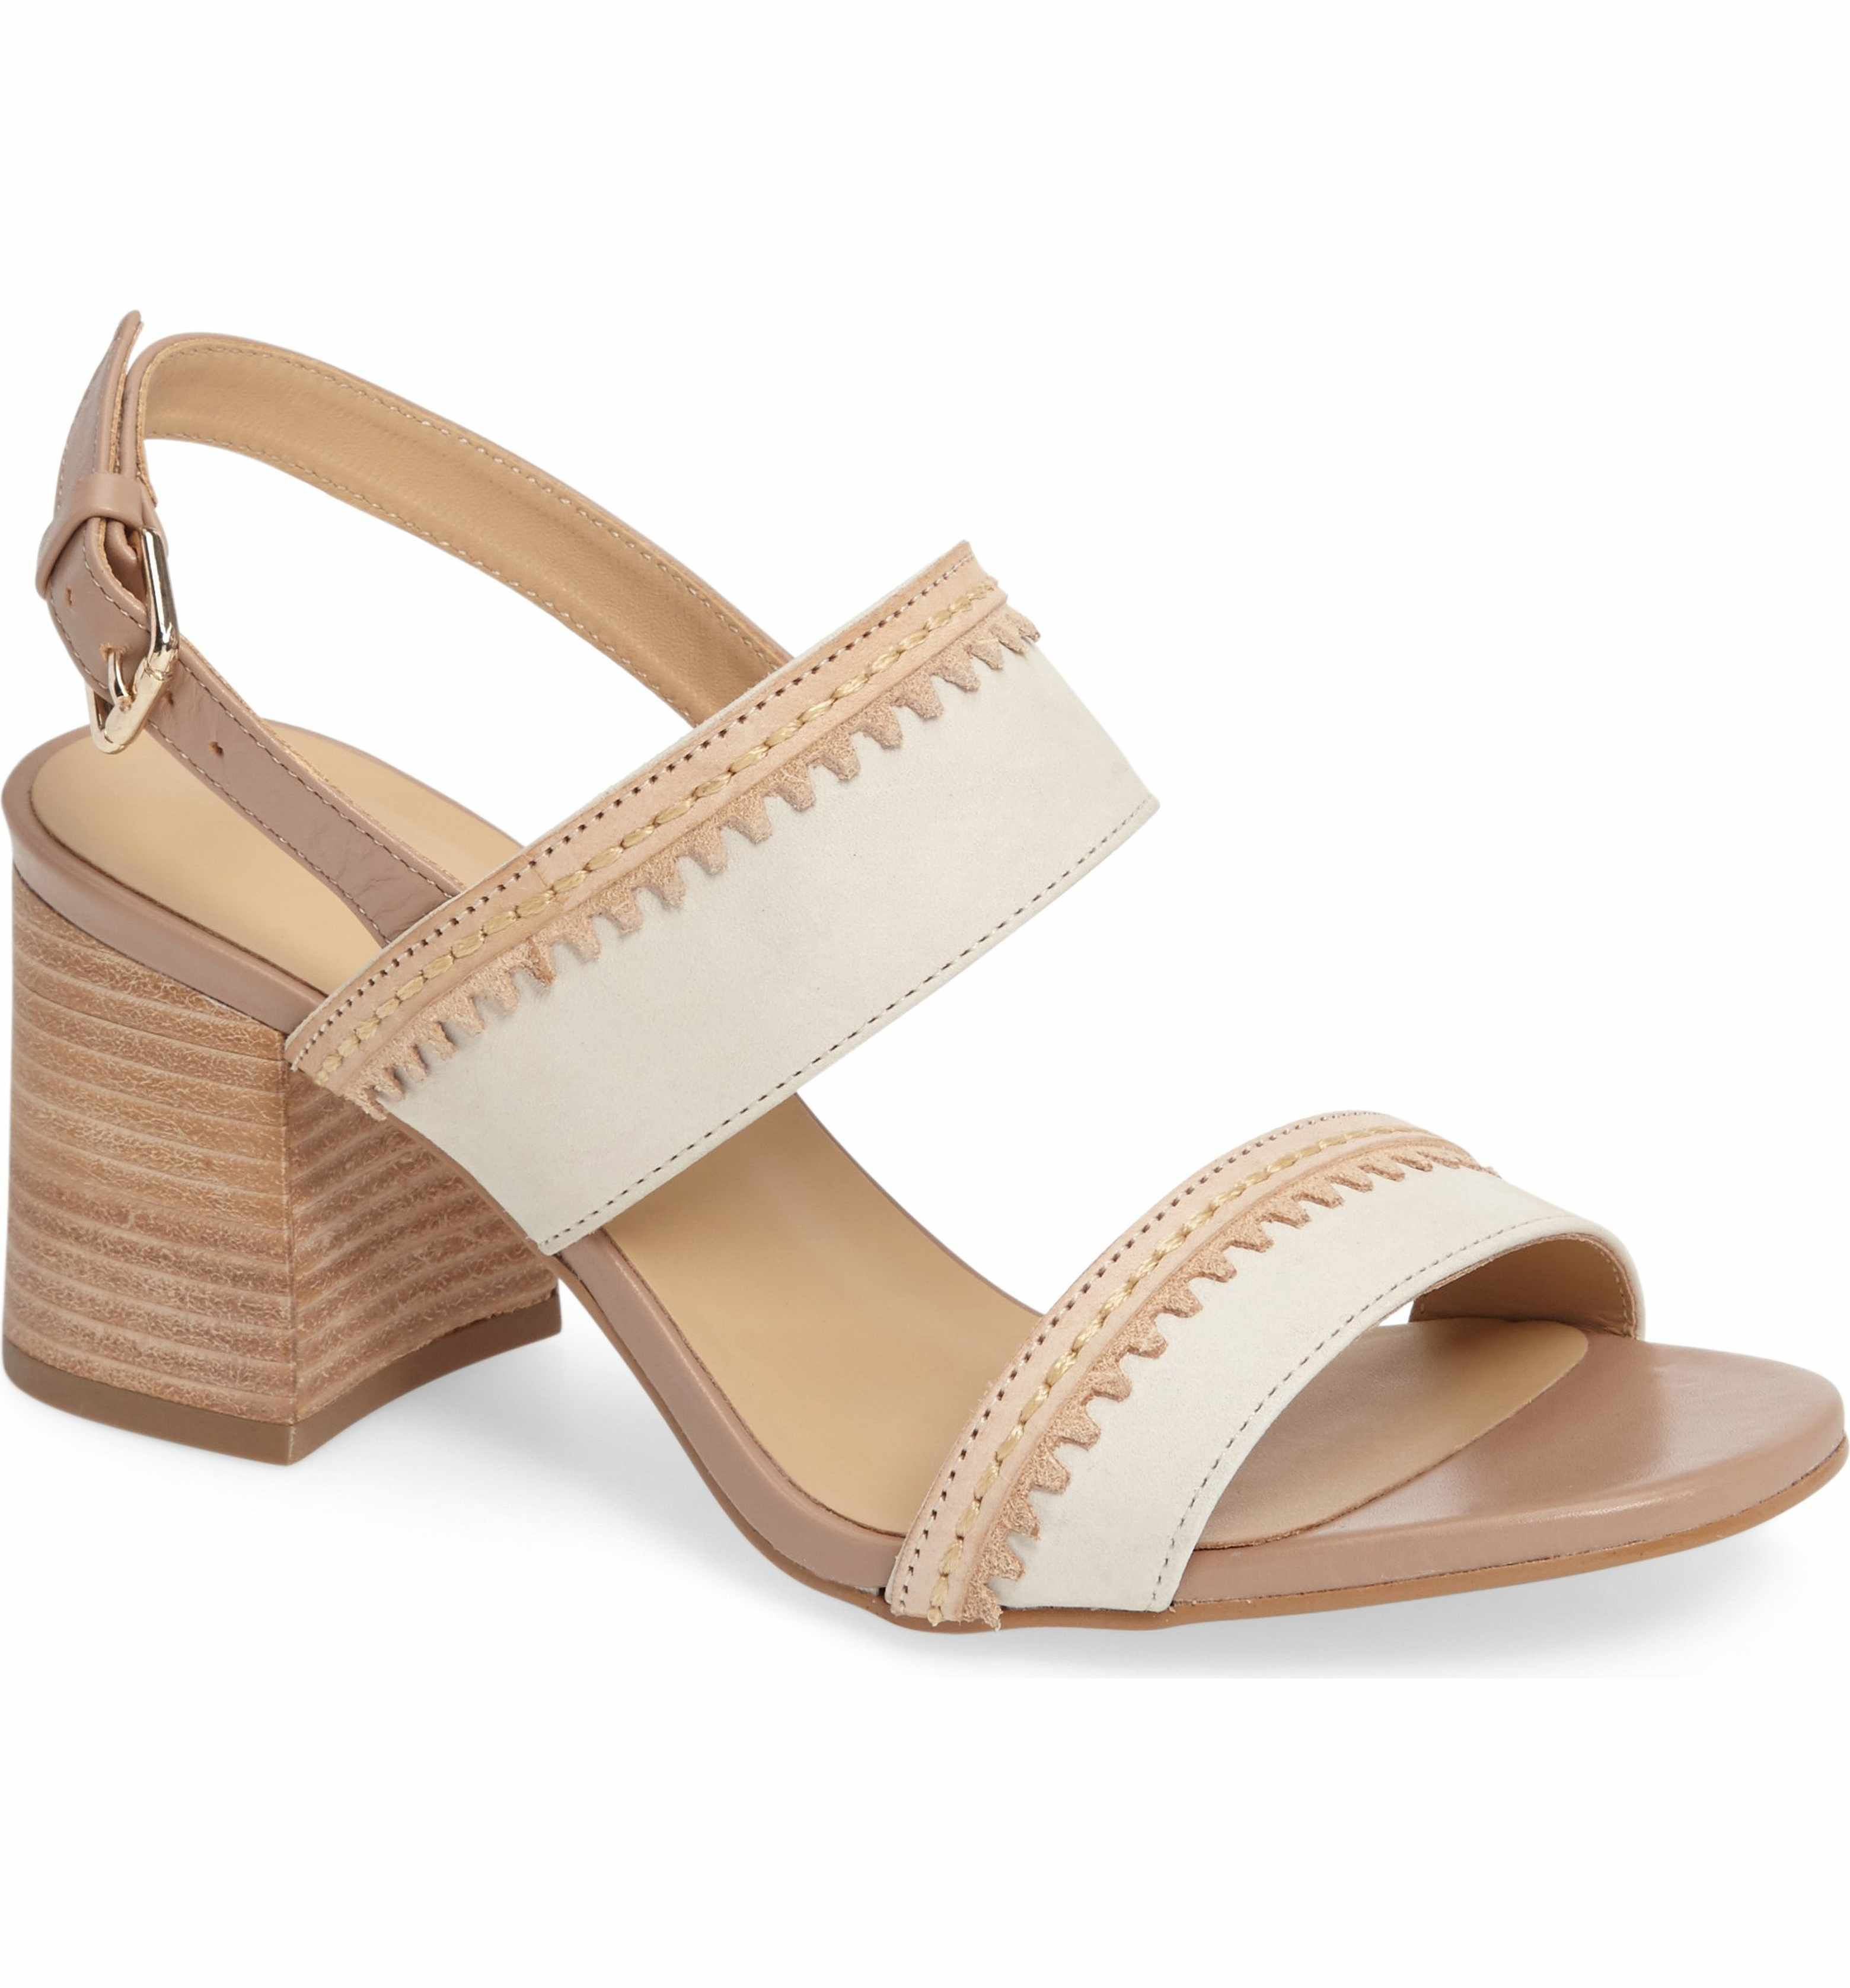 Bridal Shoes At Nordstrom: Pin On *FOOTWEAR